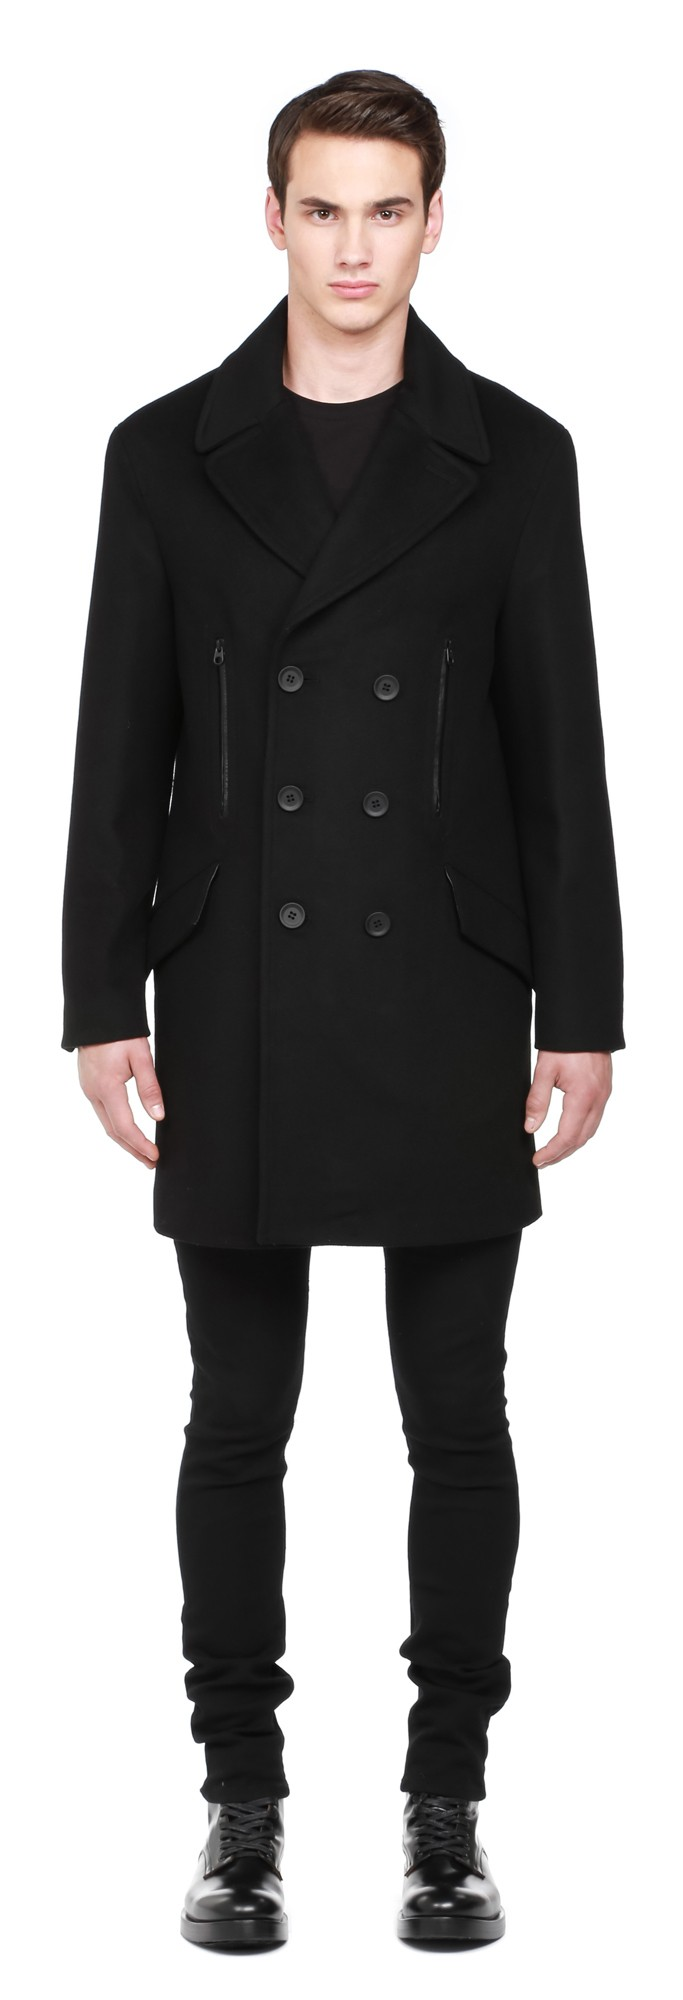 Black Flat Wool Coat With Leather Trims Mackage Men